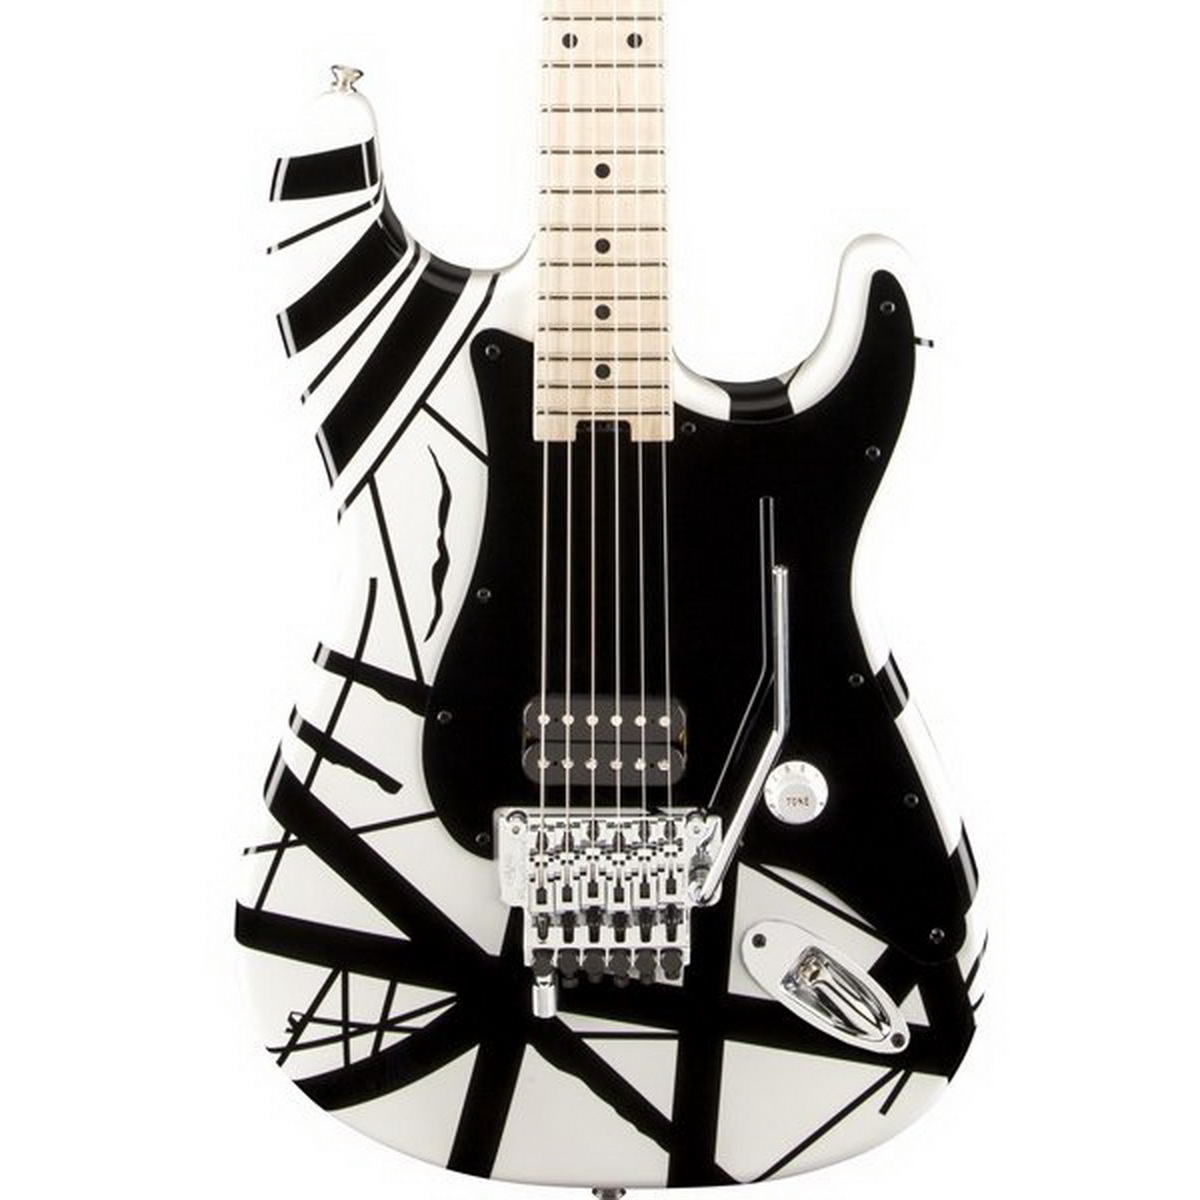 EVH Striped Series Stratocaster Electric Guitar